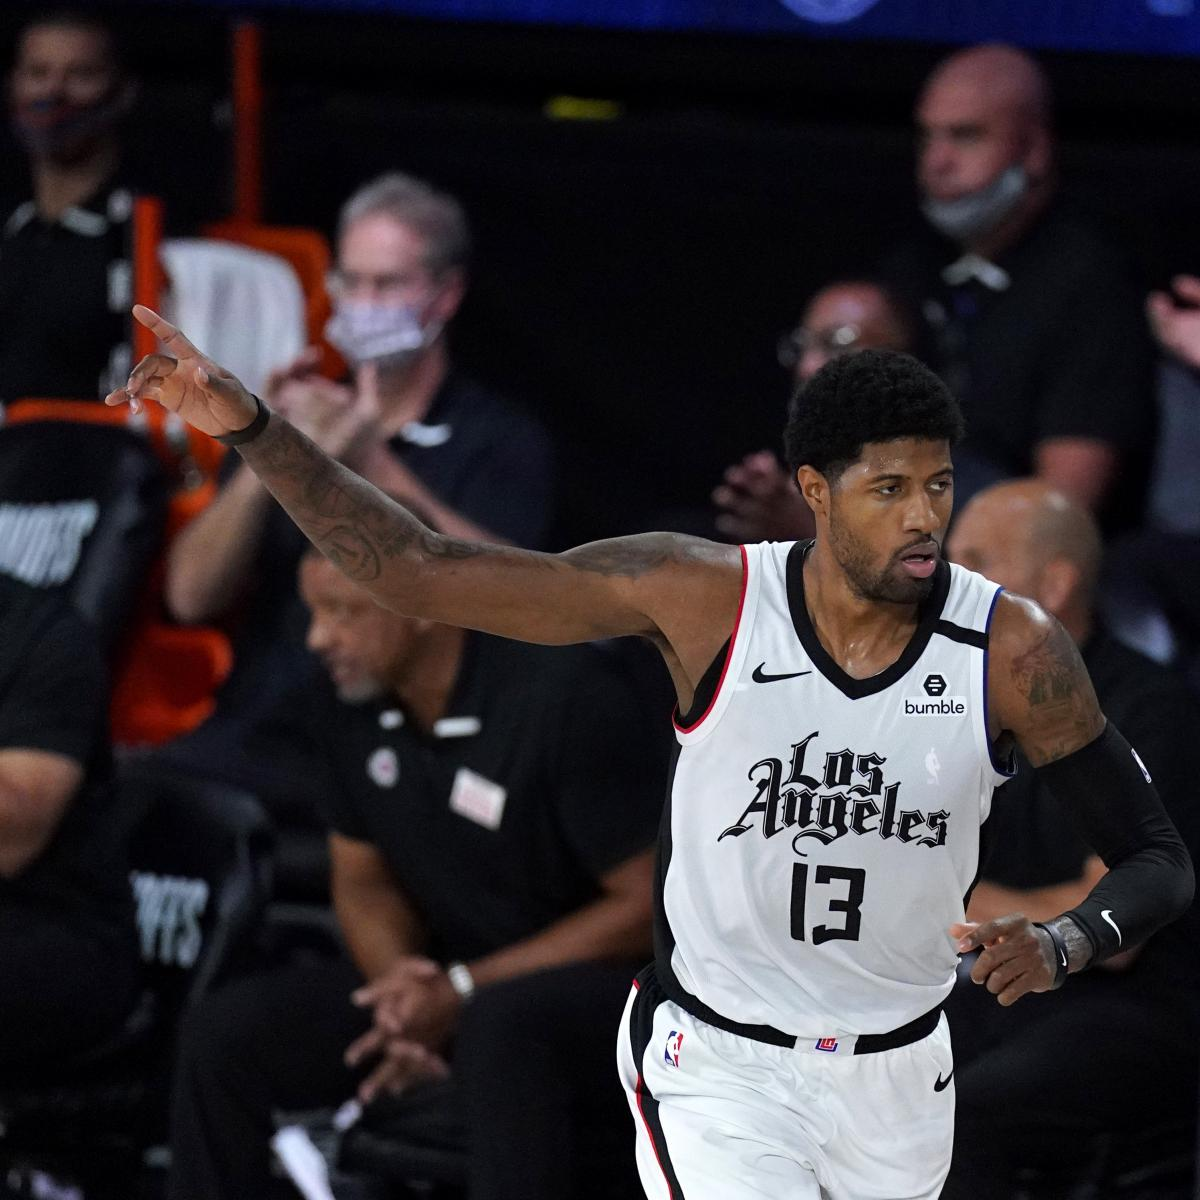 Clippers Rumors: Paul George Met with 'Bewilderment' After Post-Game 7 Comments